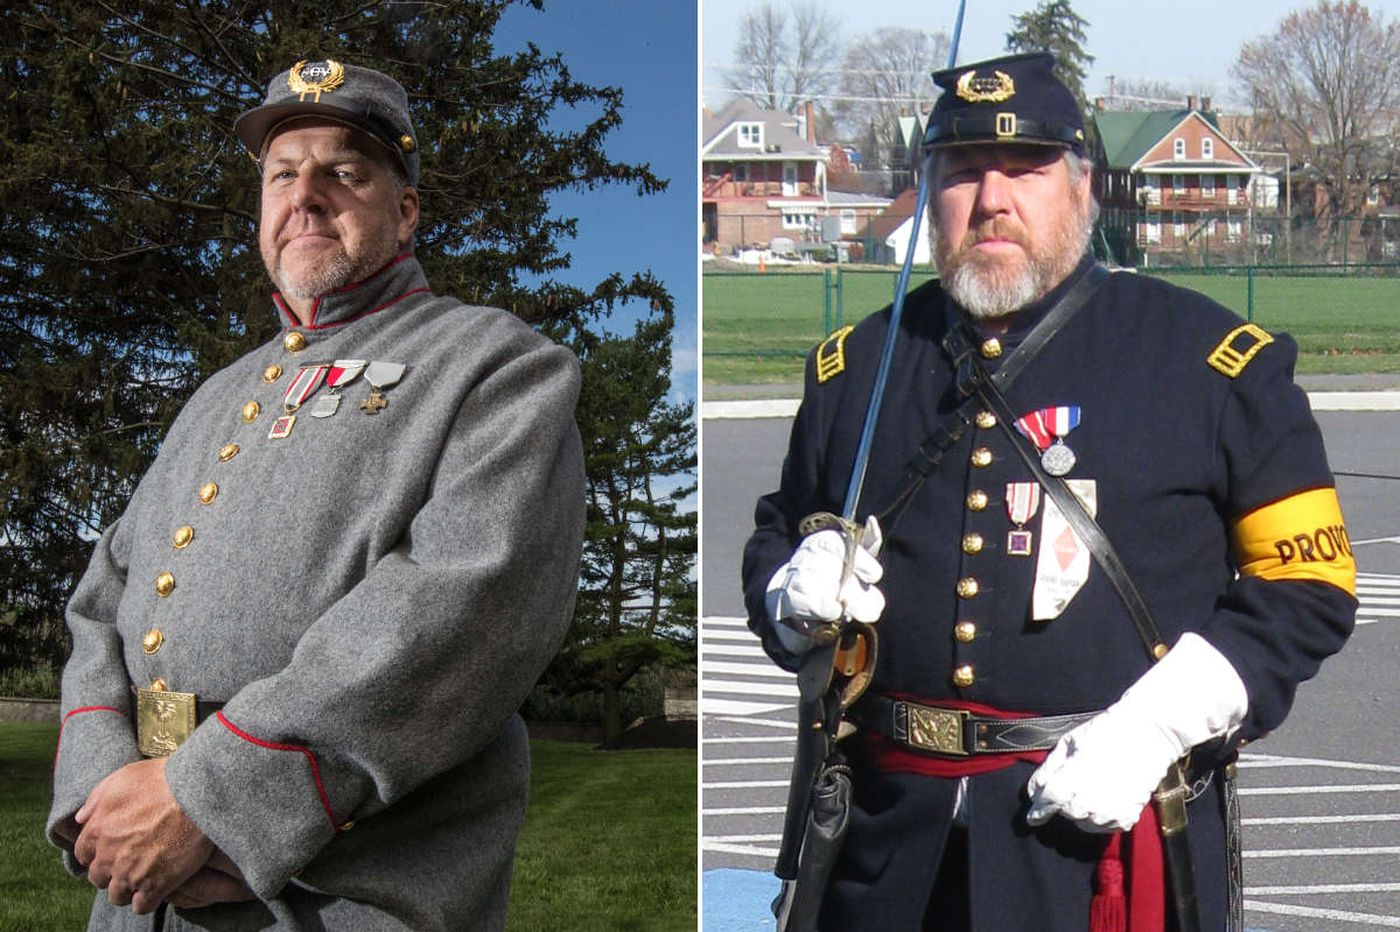 For this 'son' of both Confederate and Union soldiers, it's only history